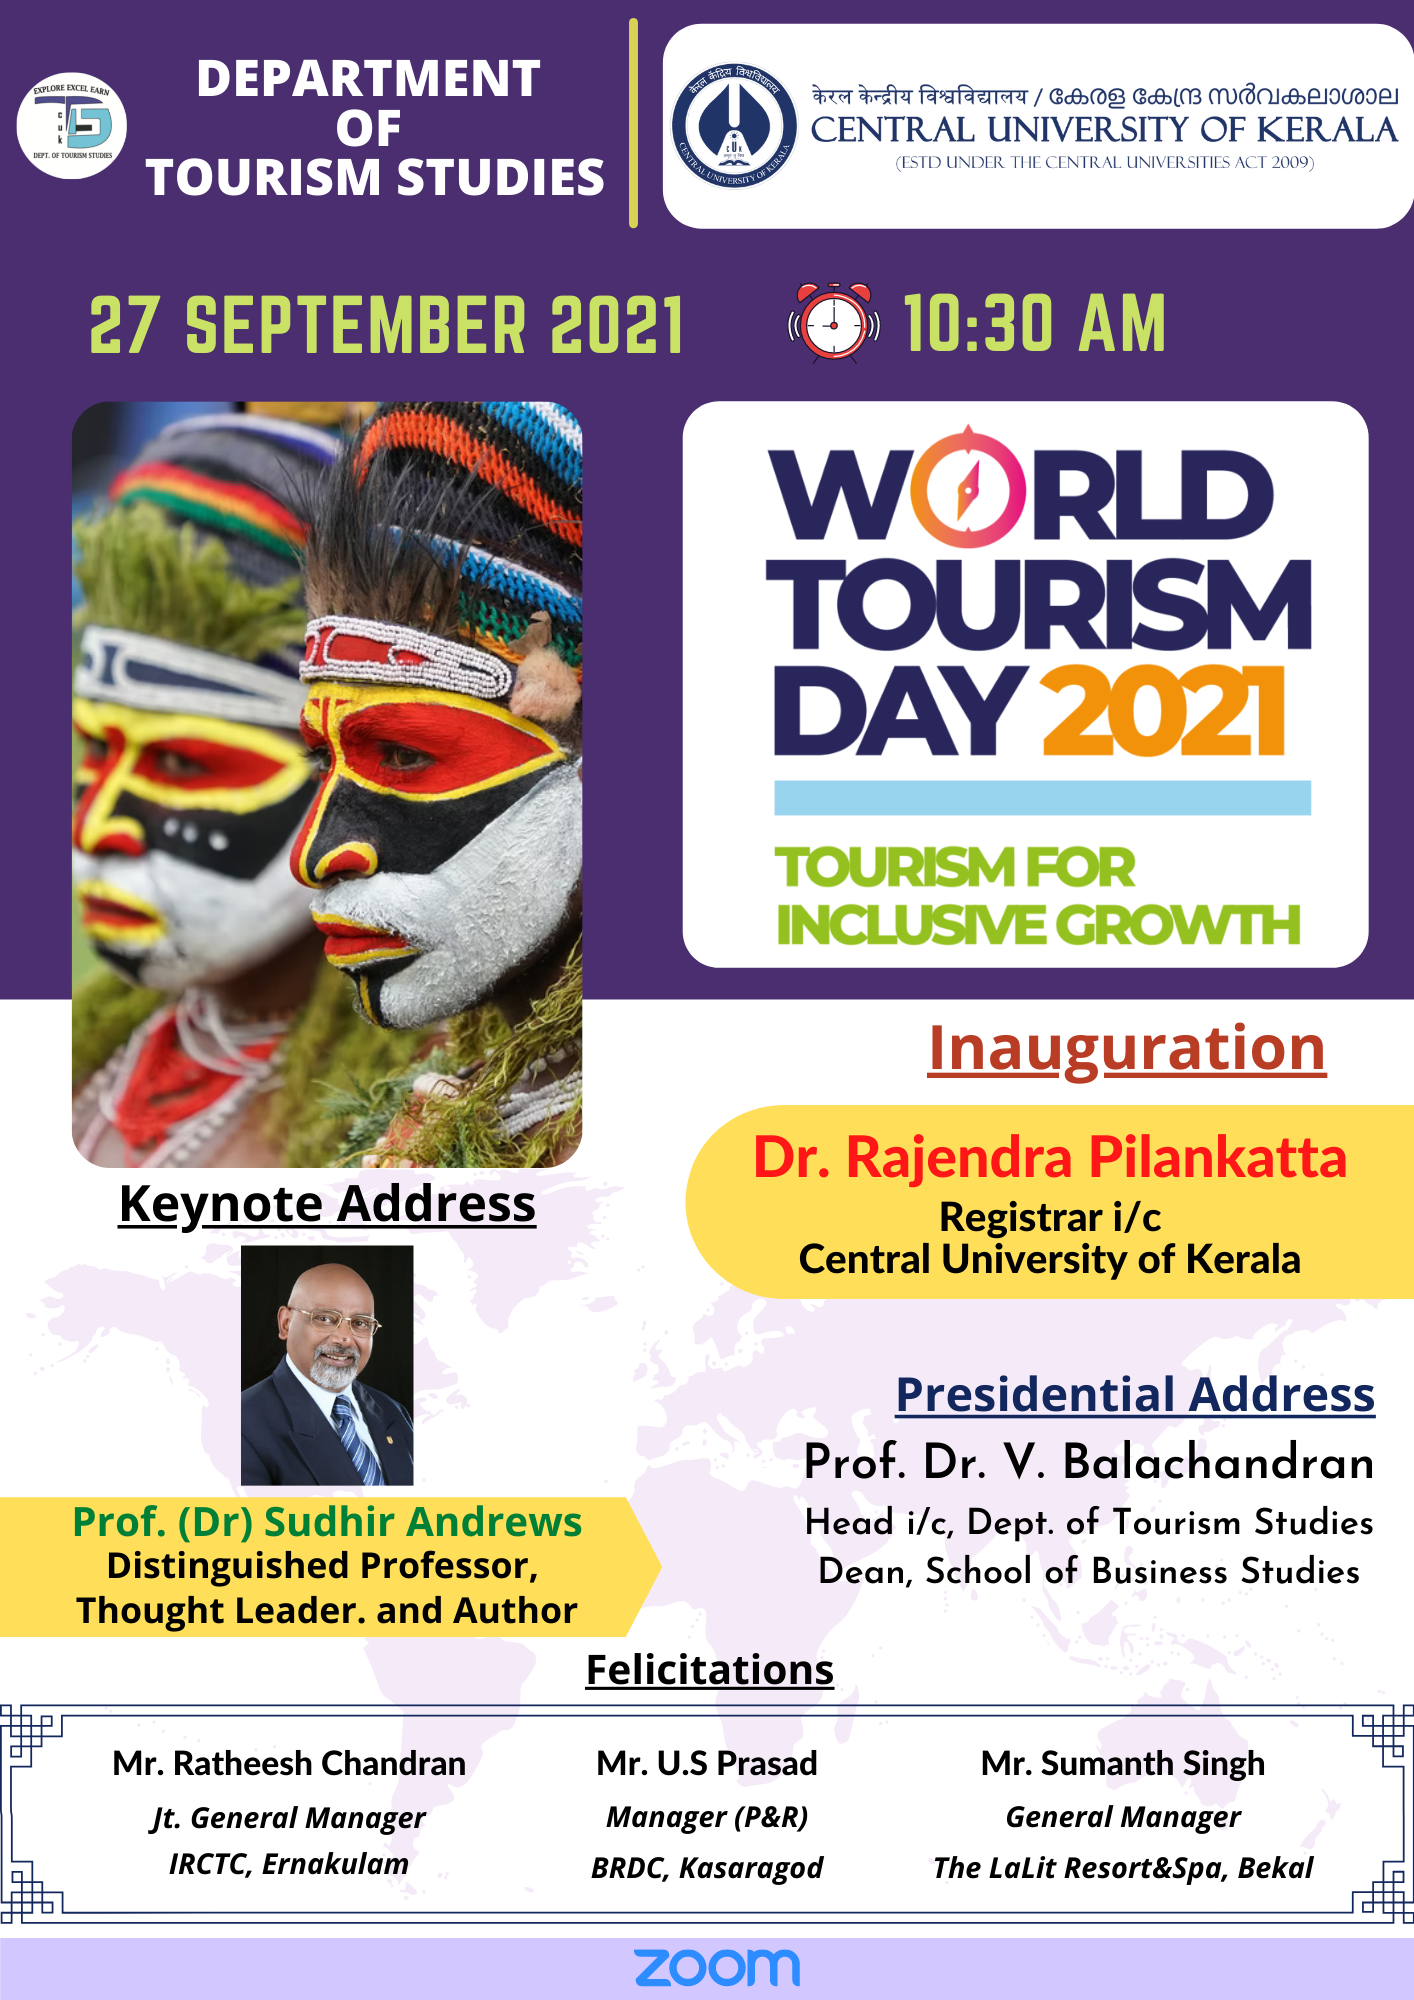 World Tourism Day 2021 at the Department of Tourism Studies